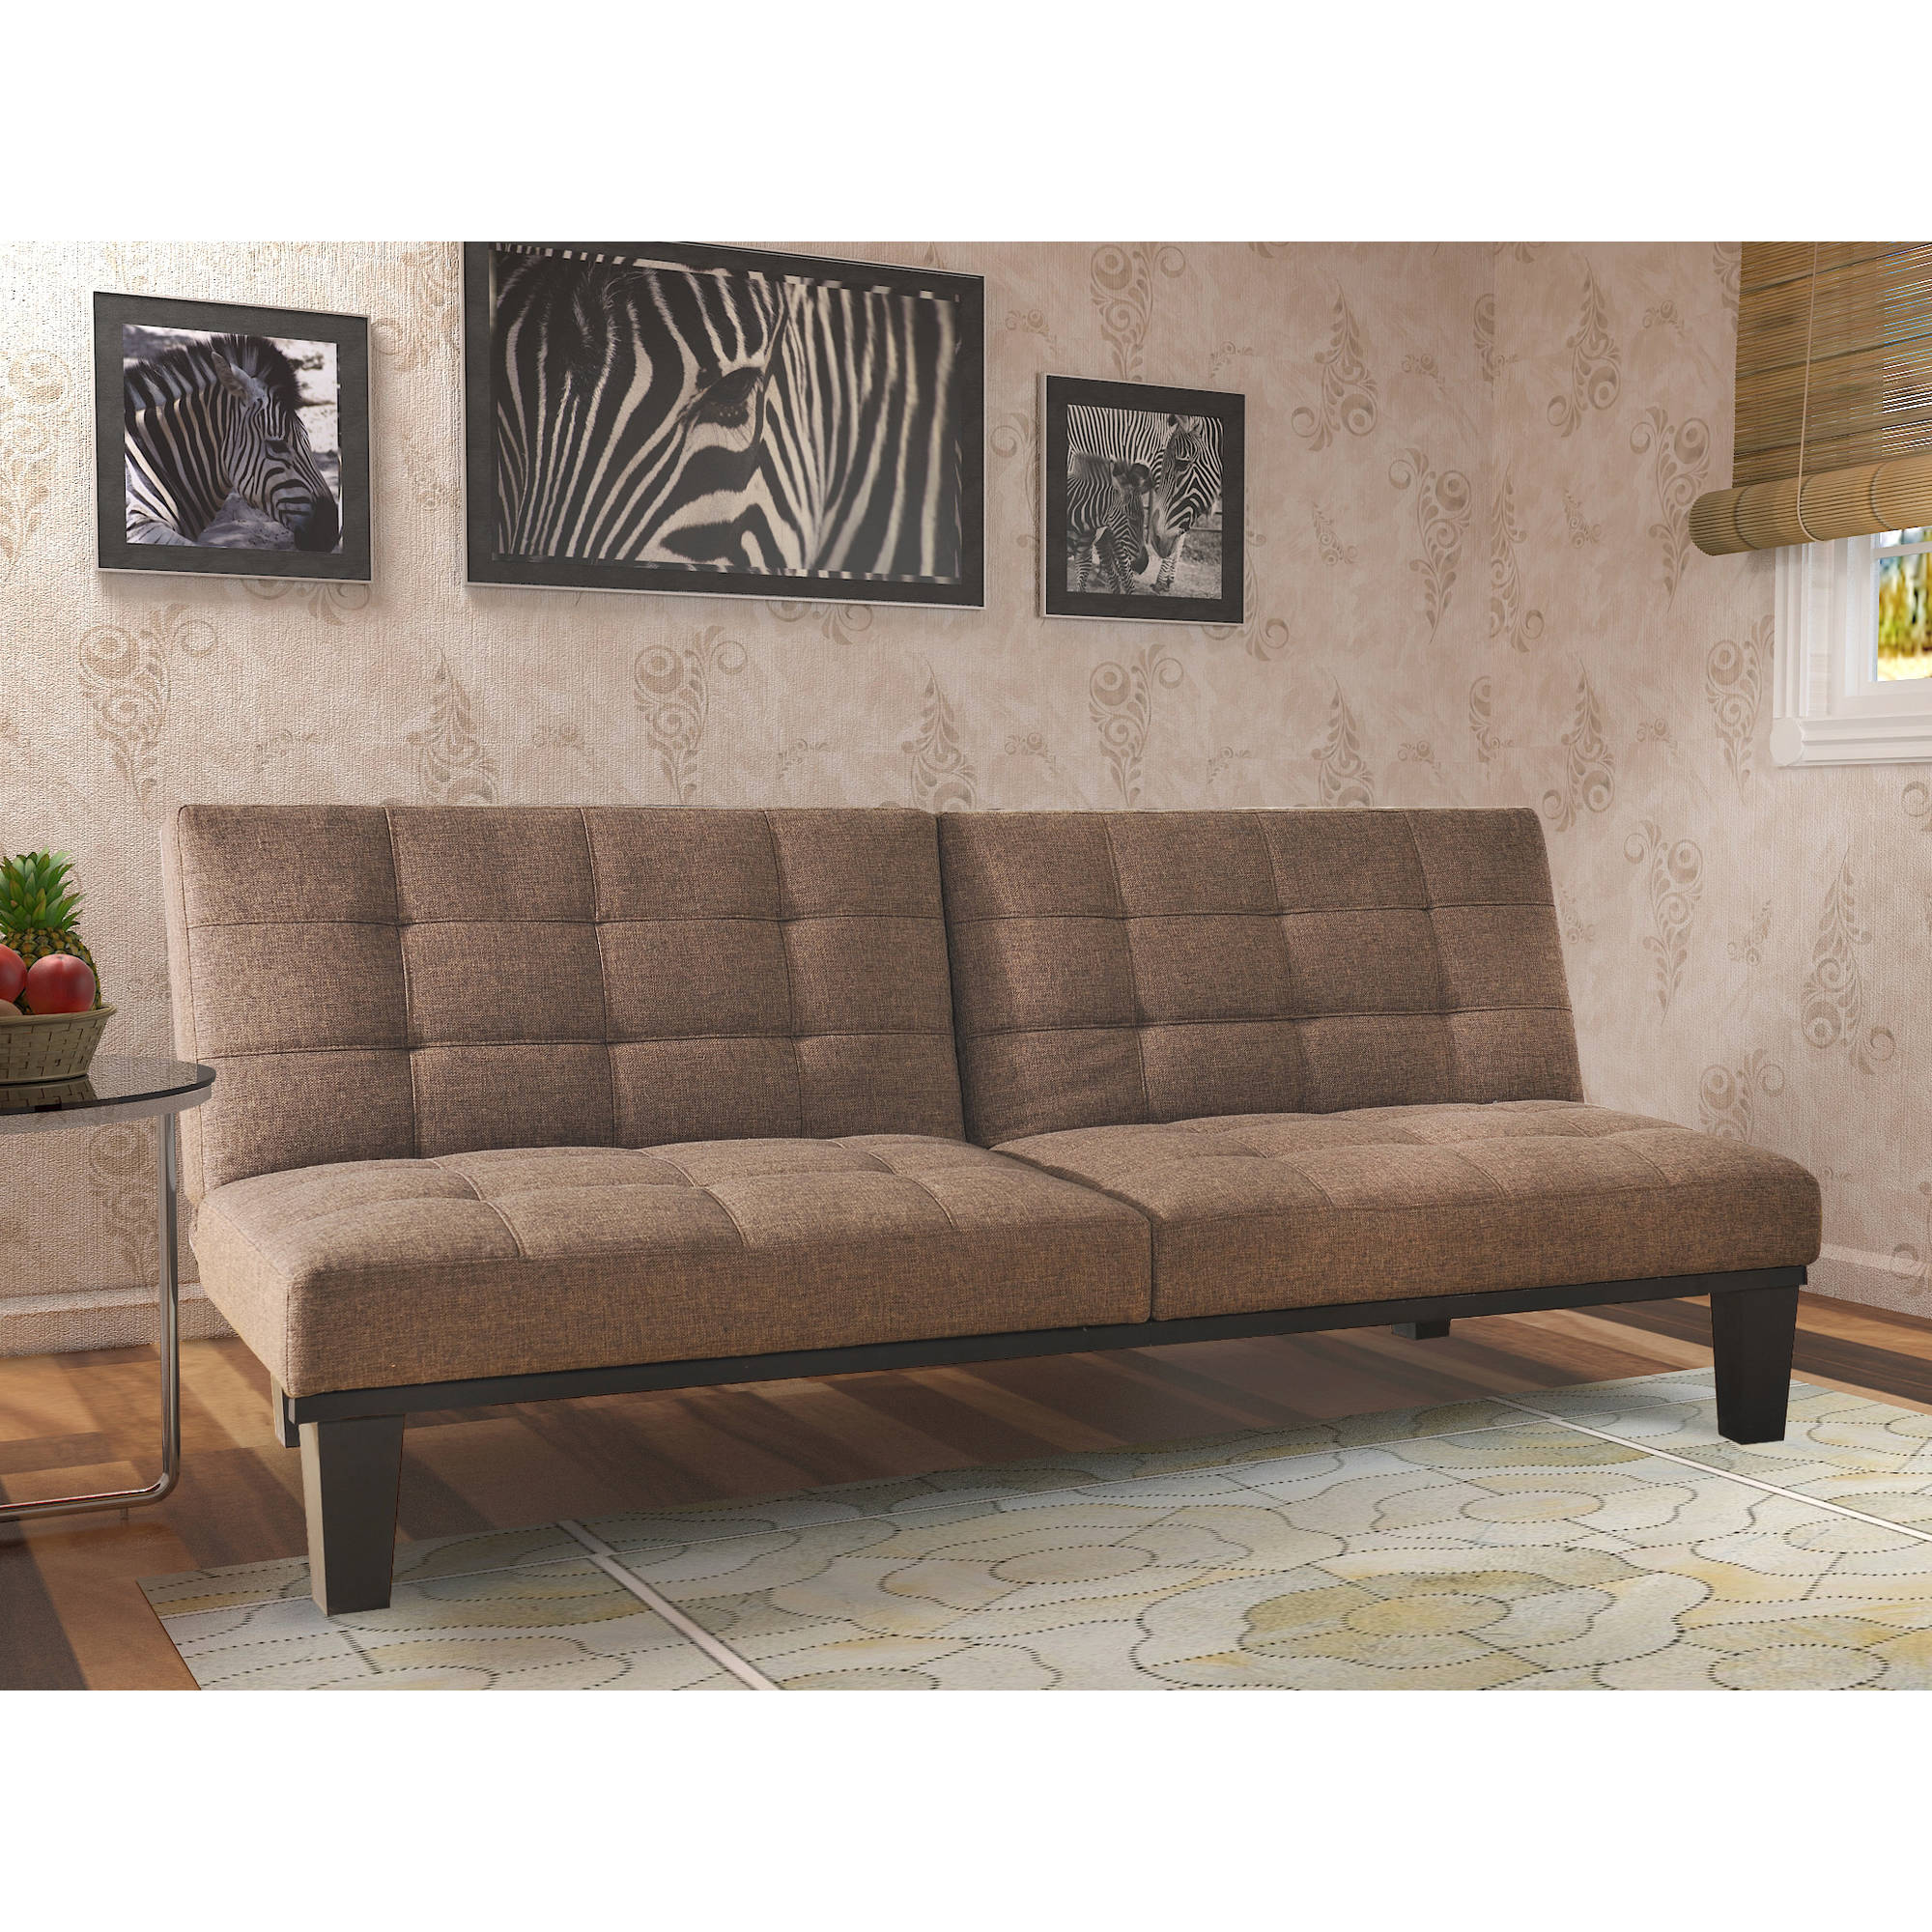 foam block sofa bed italia sofas uk tweed memory futon multiple colors ebay